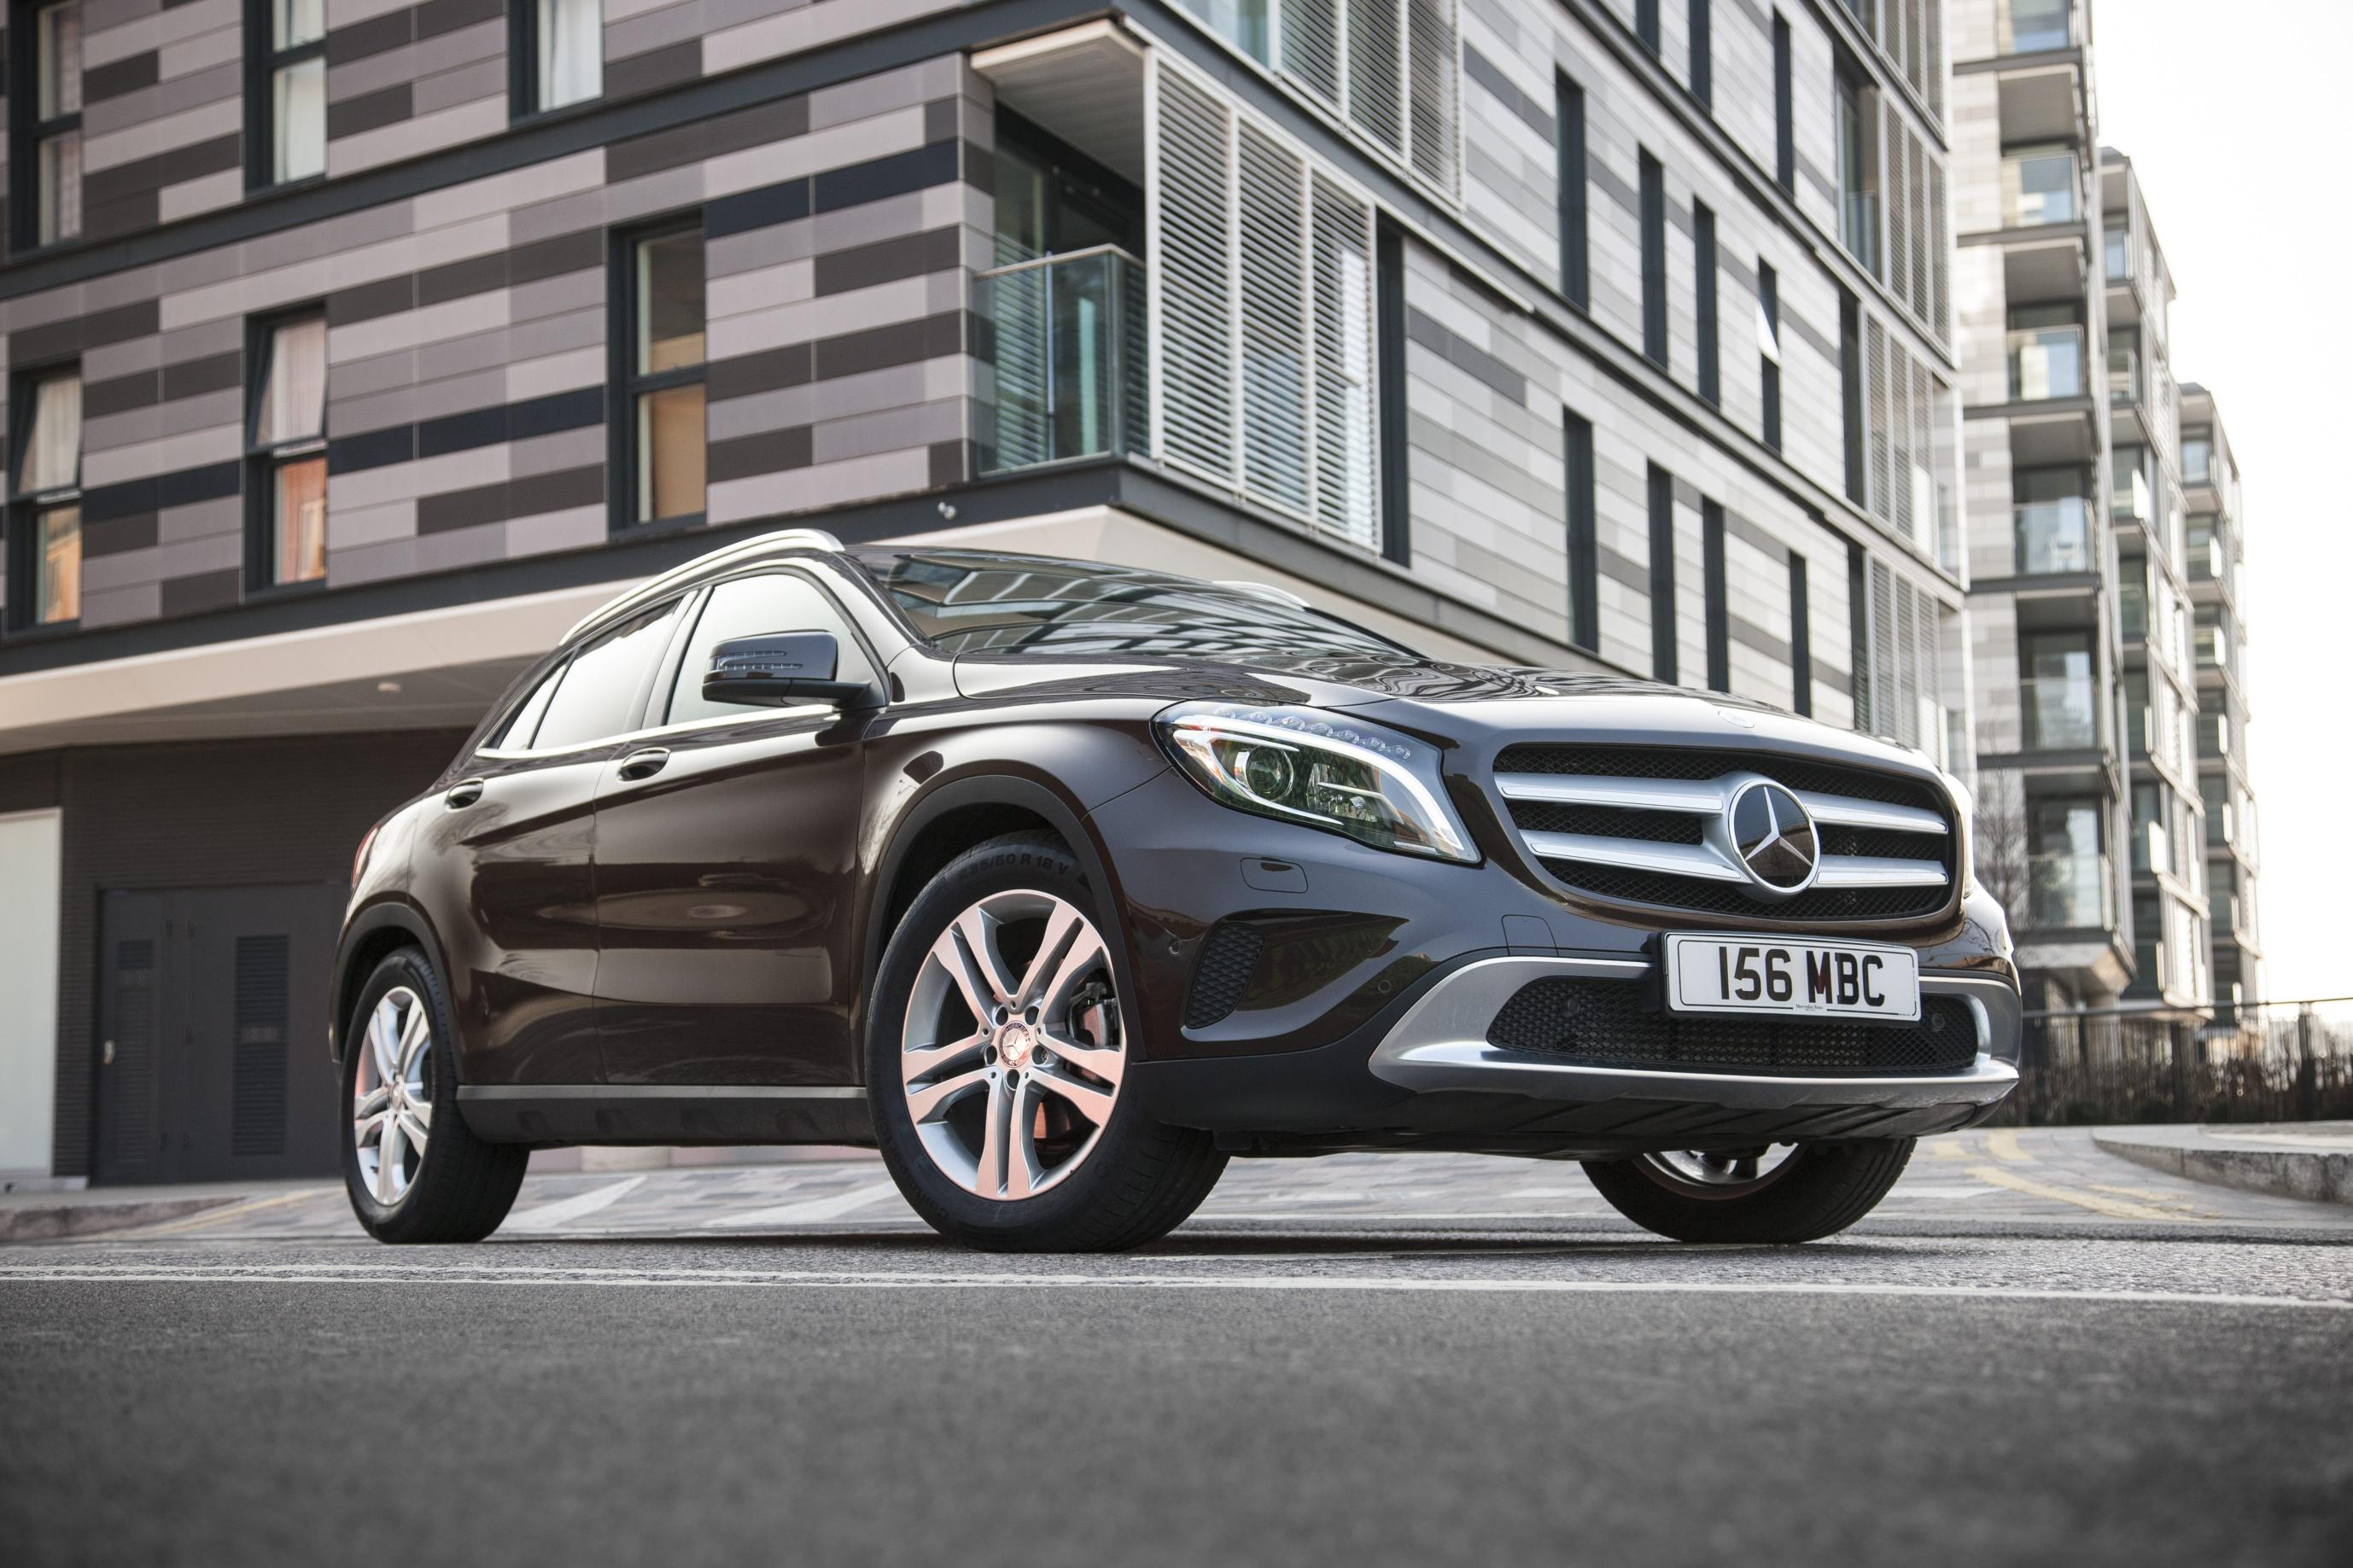 mercedes benz gla crossover frequently asked questions. Black Bedroom Furniture Sets. Home Design Ideas